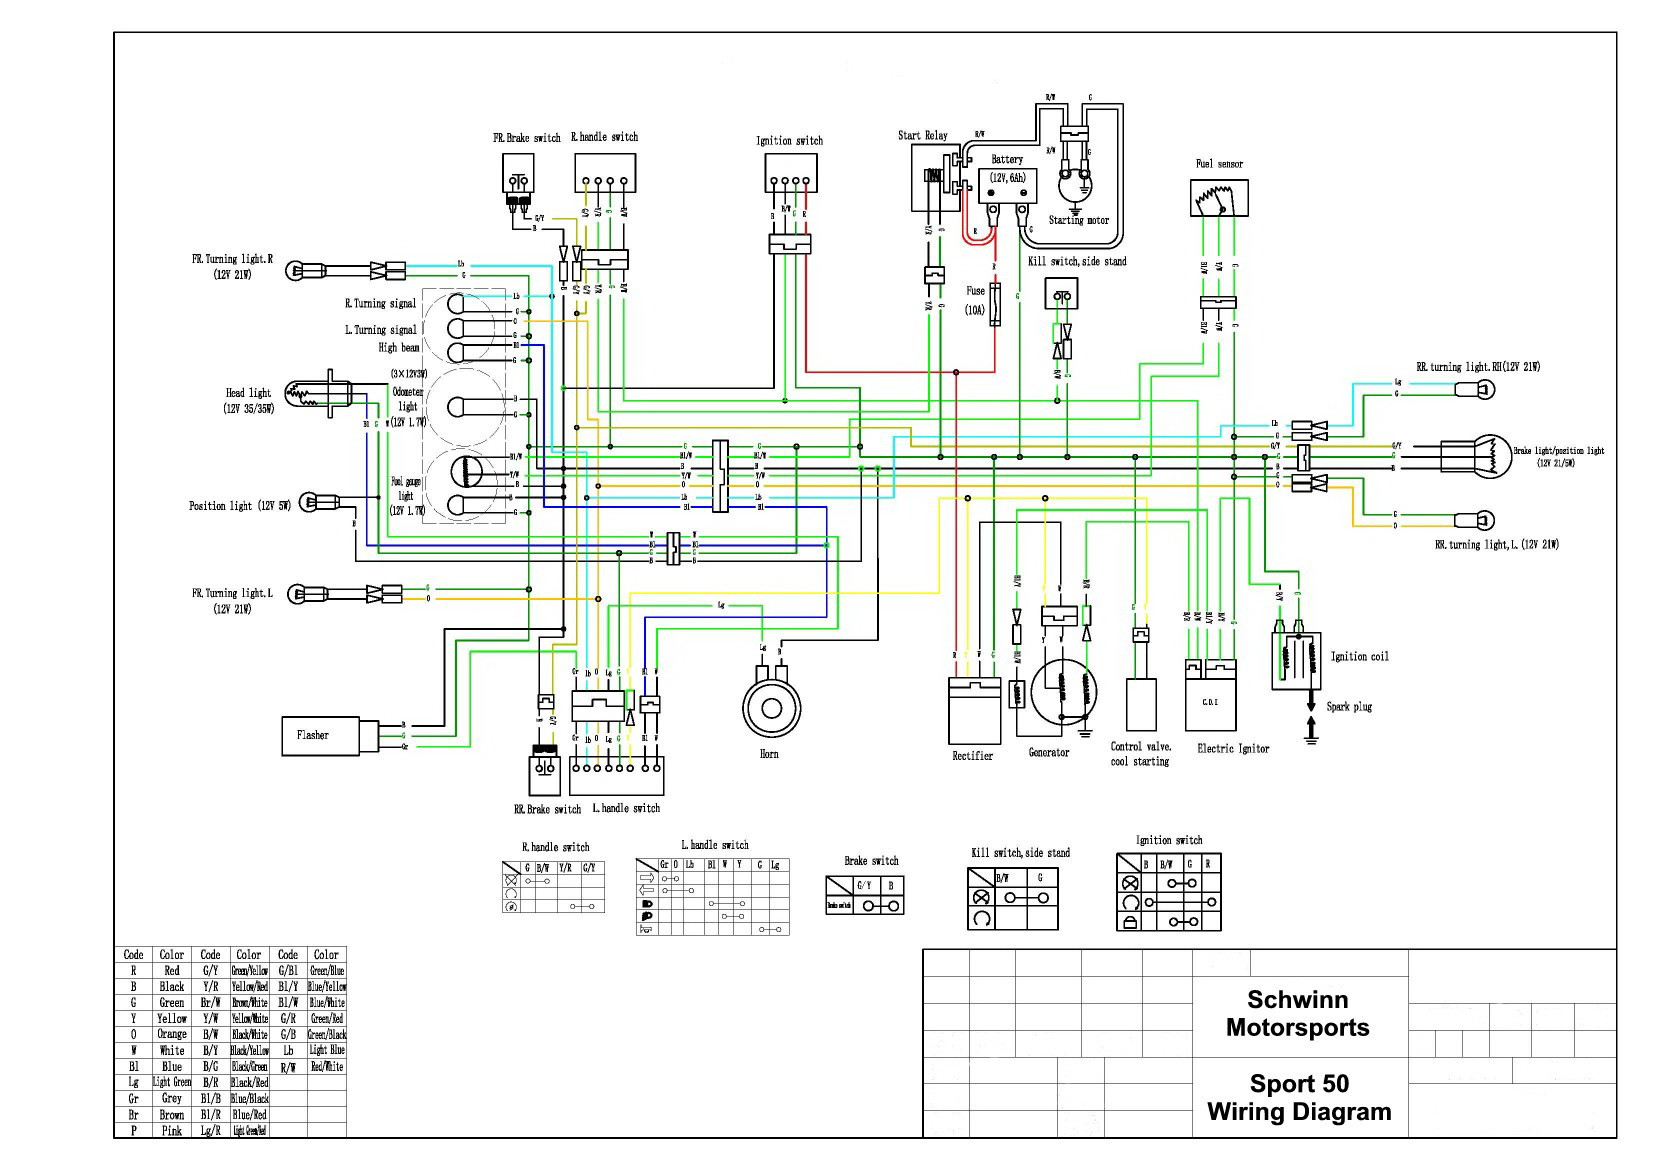 pride victory scooter wiring diagram Download-Victory Trailer Wiring Diagram Best Pride Mobility Victory Scooter Wiring Diagram Wiring solutions 13-e